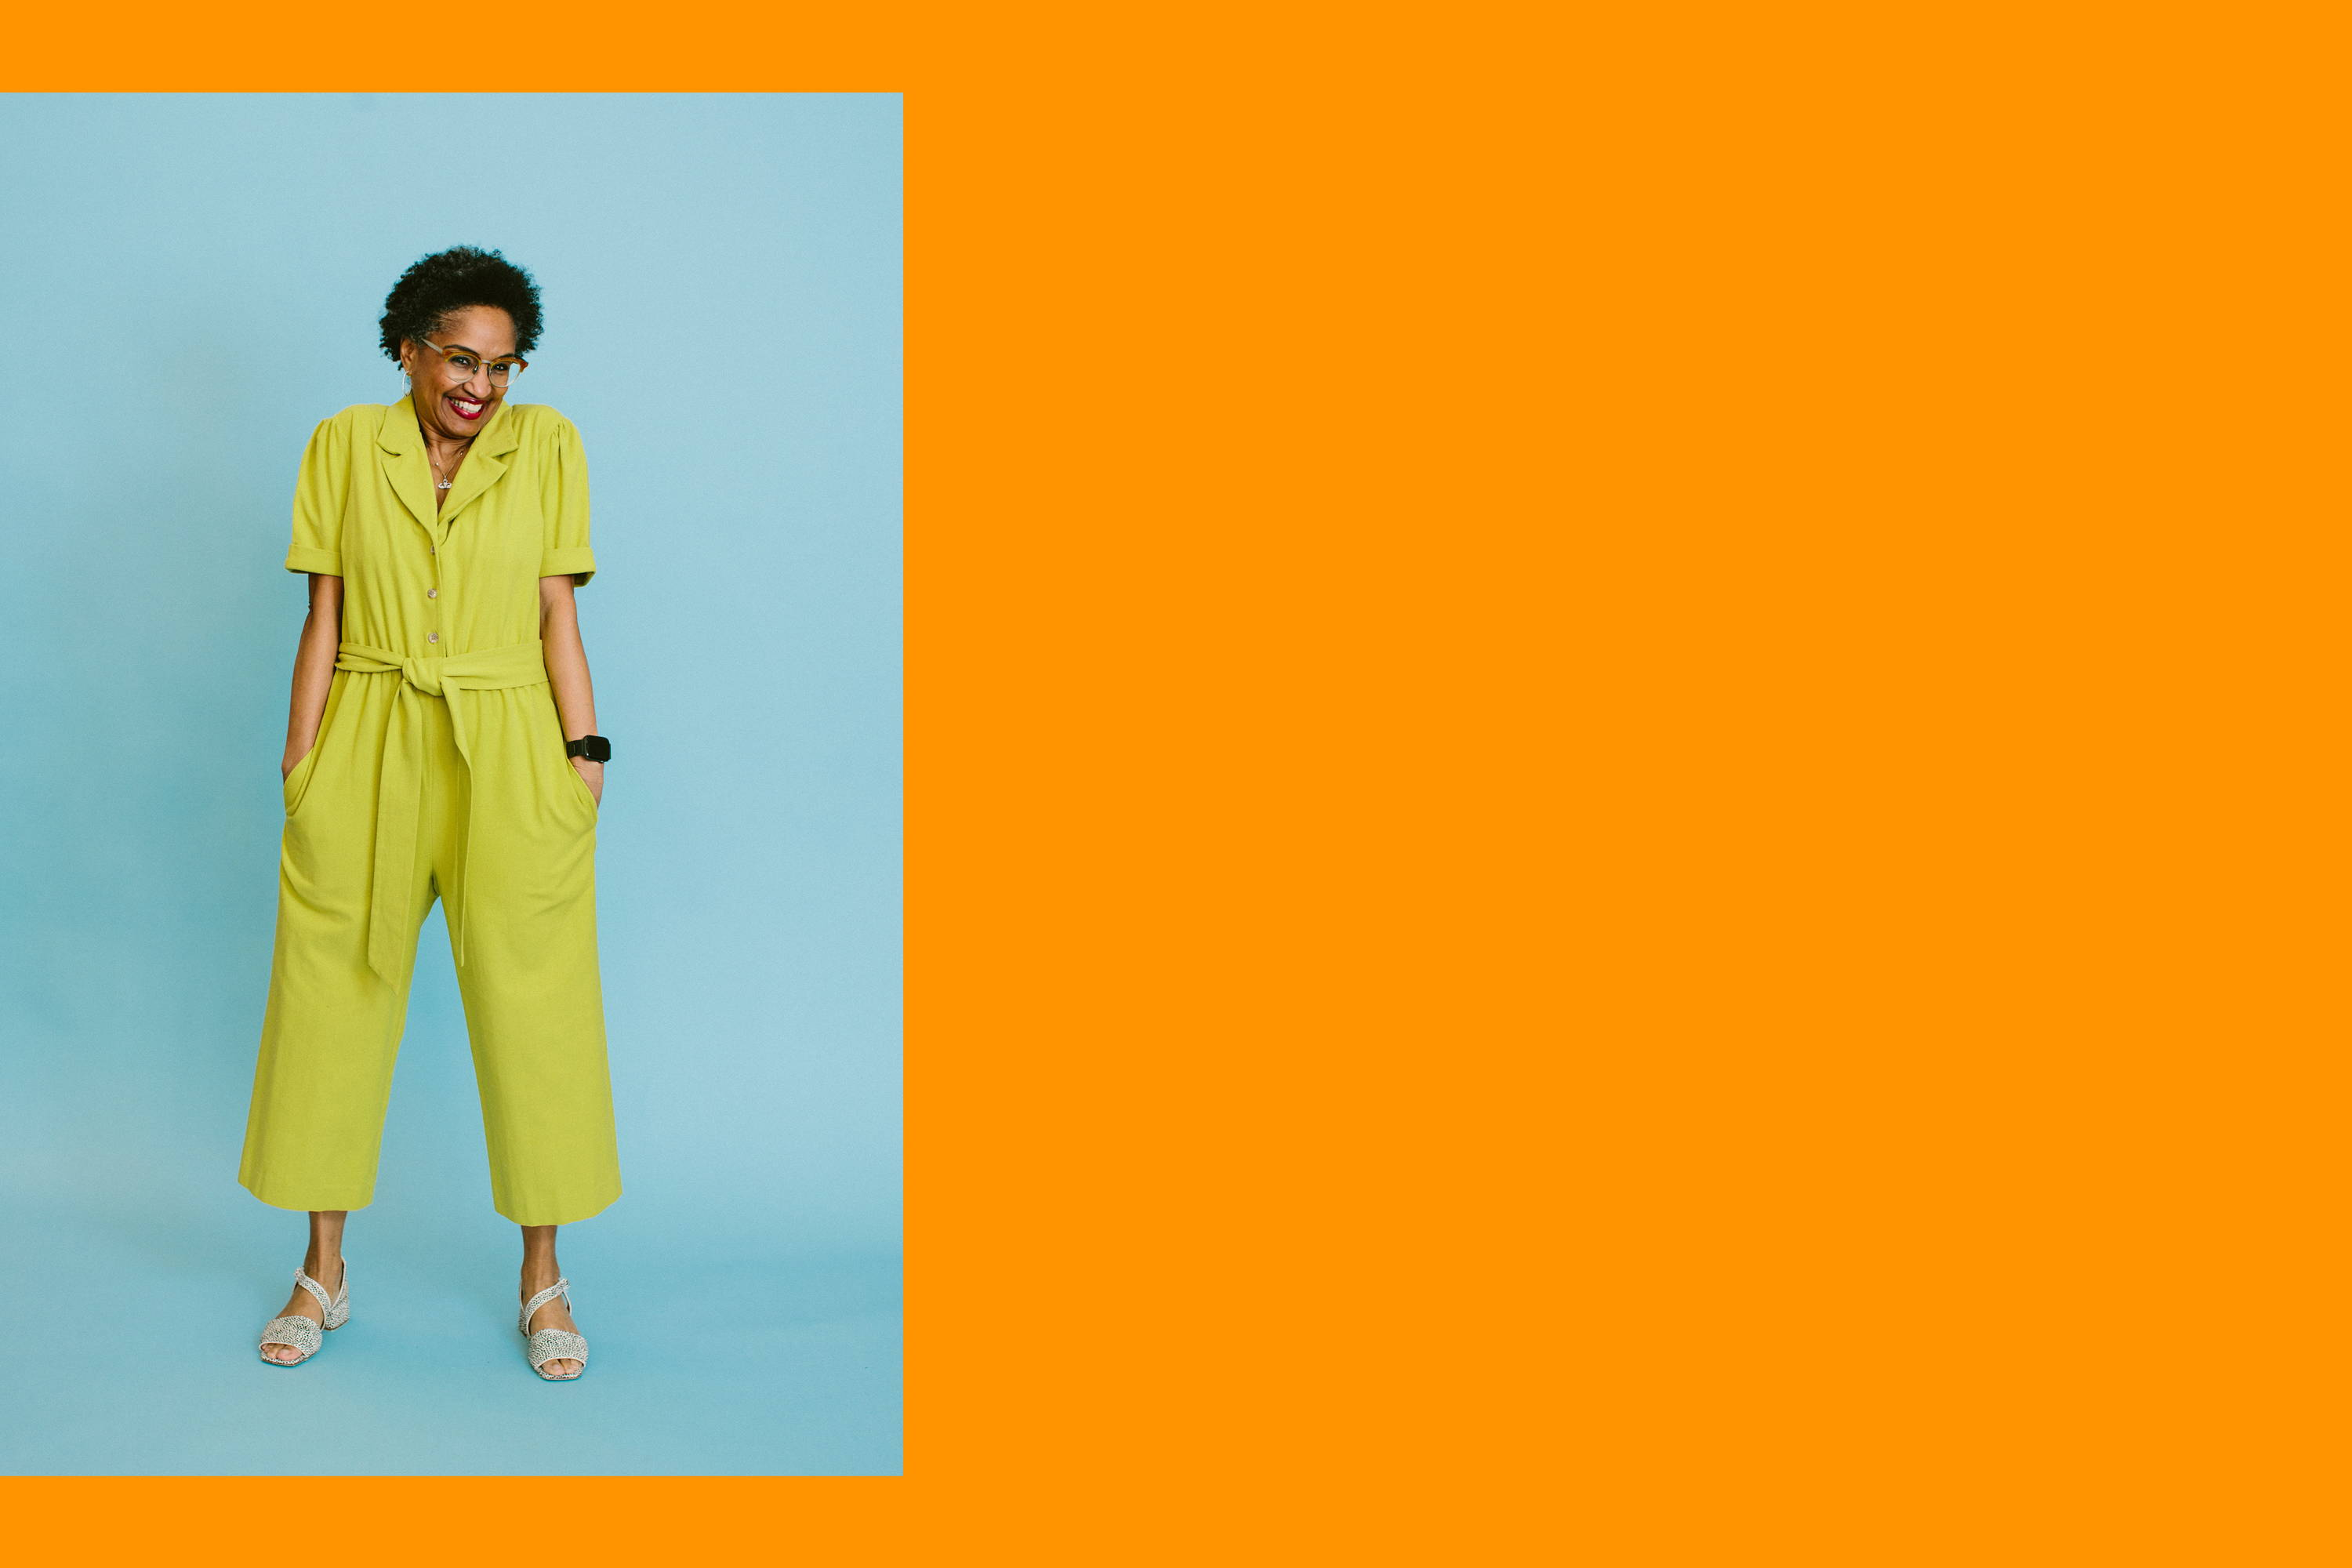 valerie wears the olivia jumpsuit in chartreuse. she is standing with her hands in her pockets in front of a baby blue background. the photo is colorblocked on an orange background.